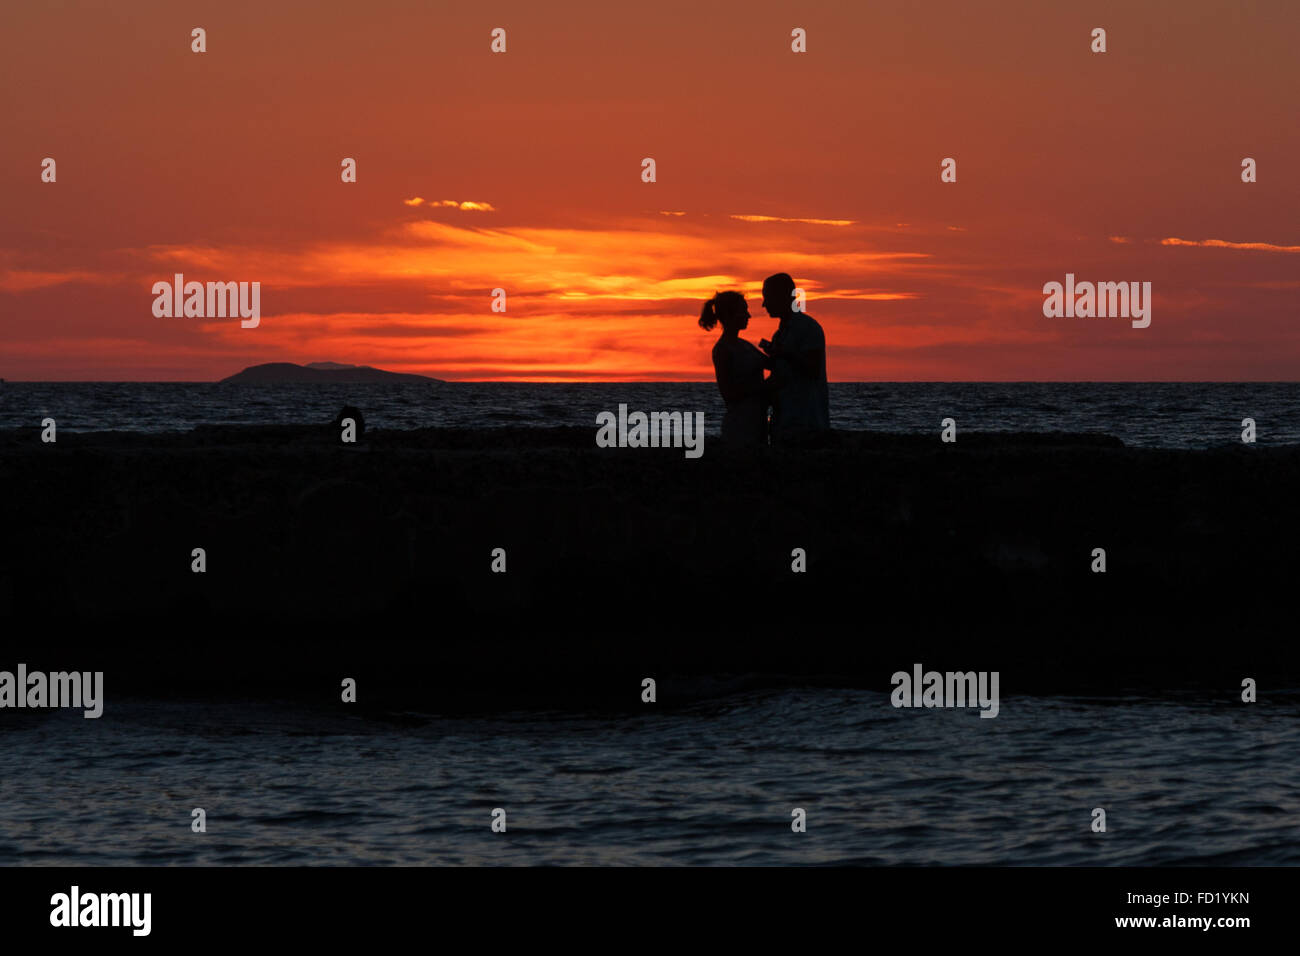 silhouette of couple facing each other with sunset backdrop - Stock Image